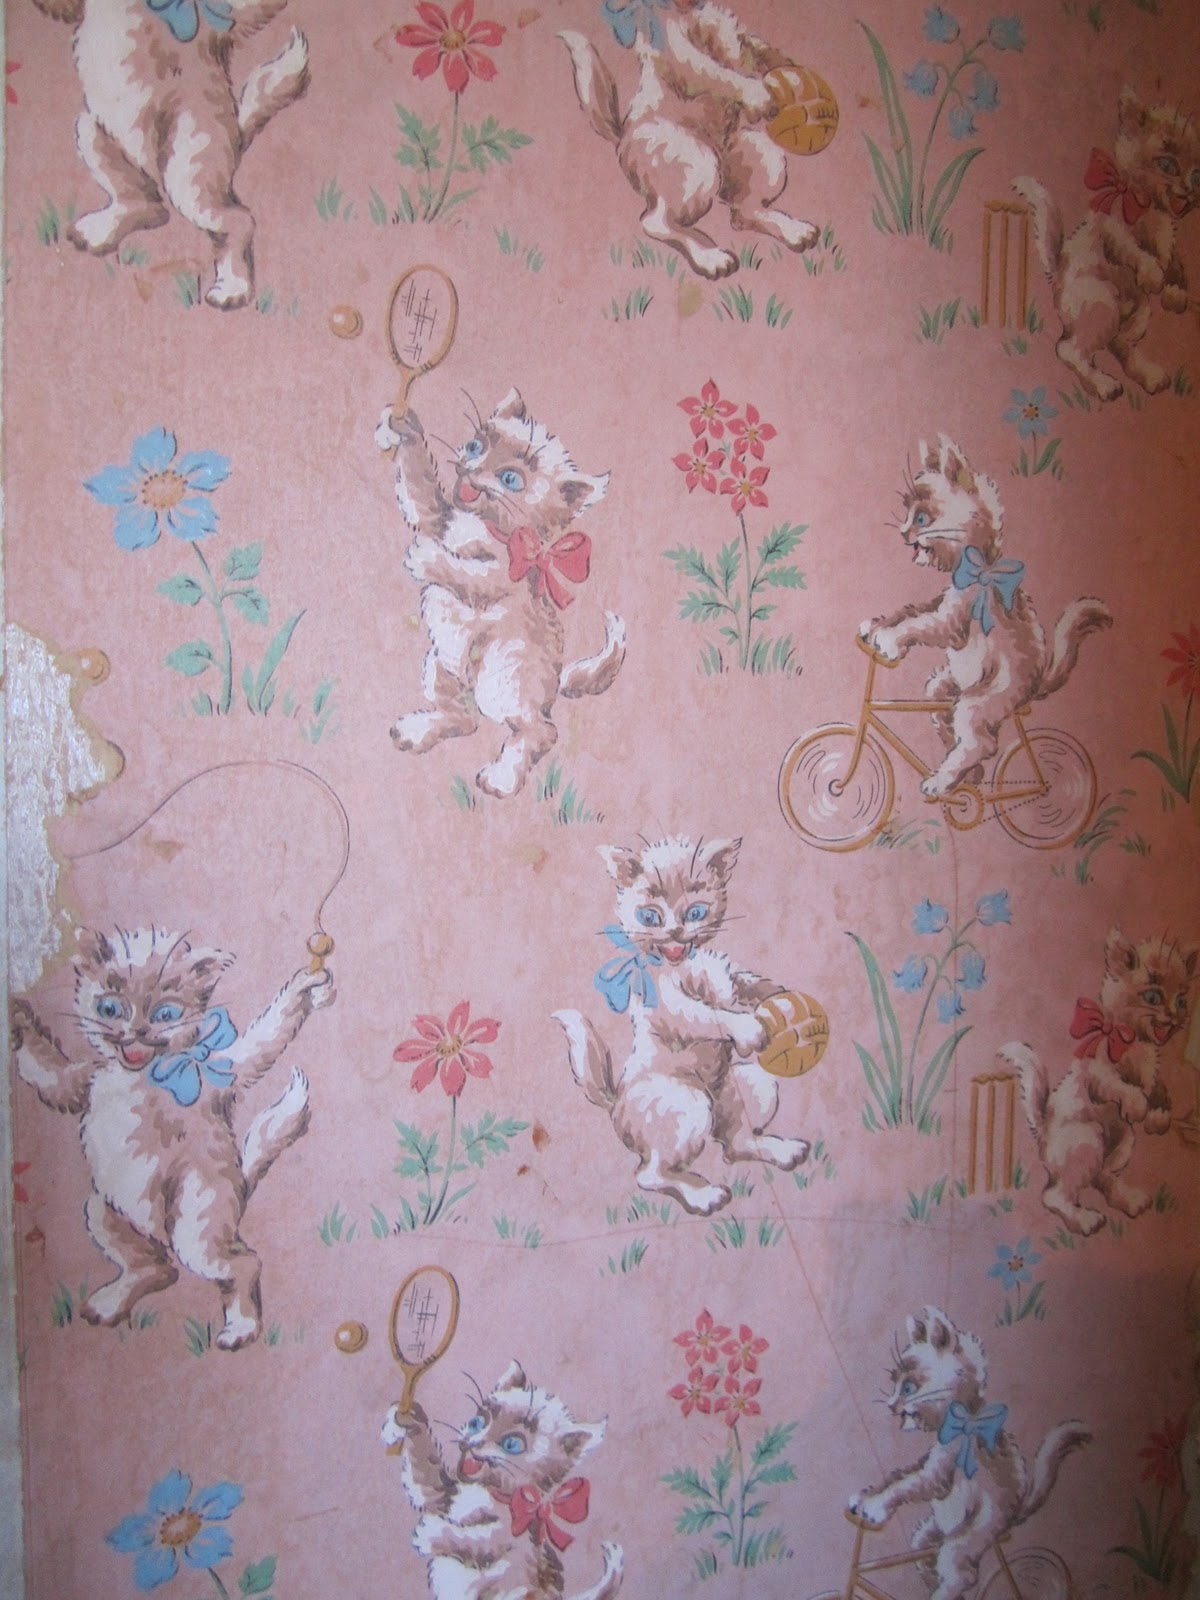 Home Improvements Vintage Cat Wallpaper Sometimes There Just Aren